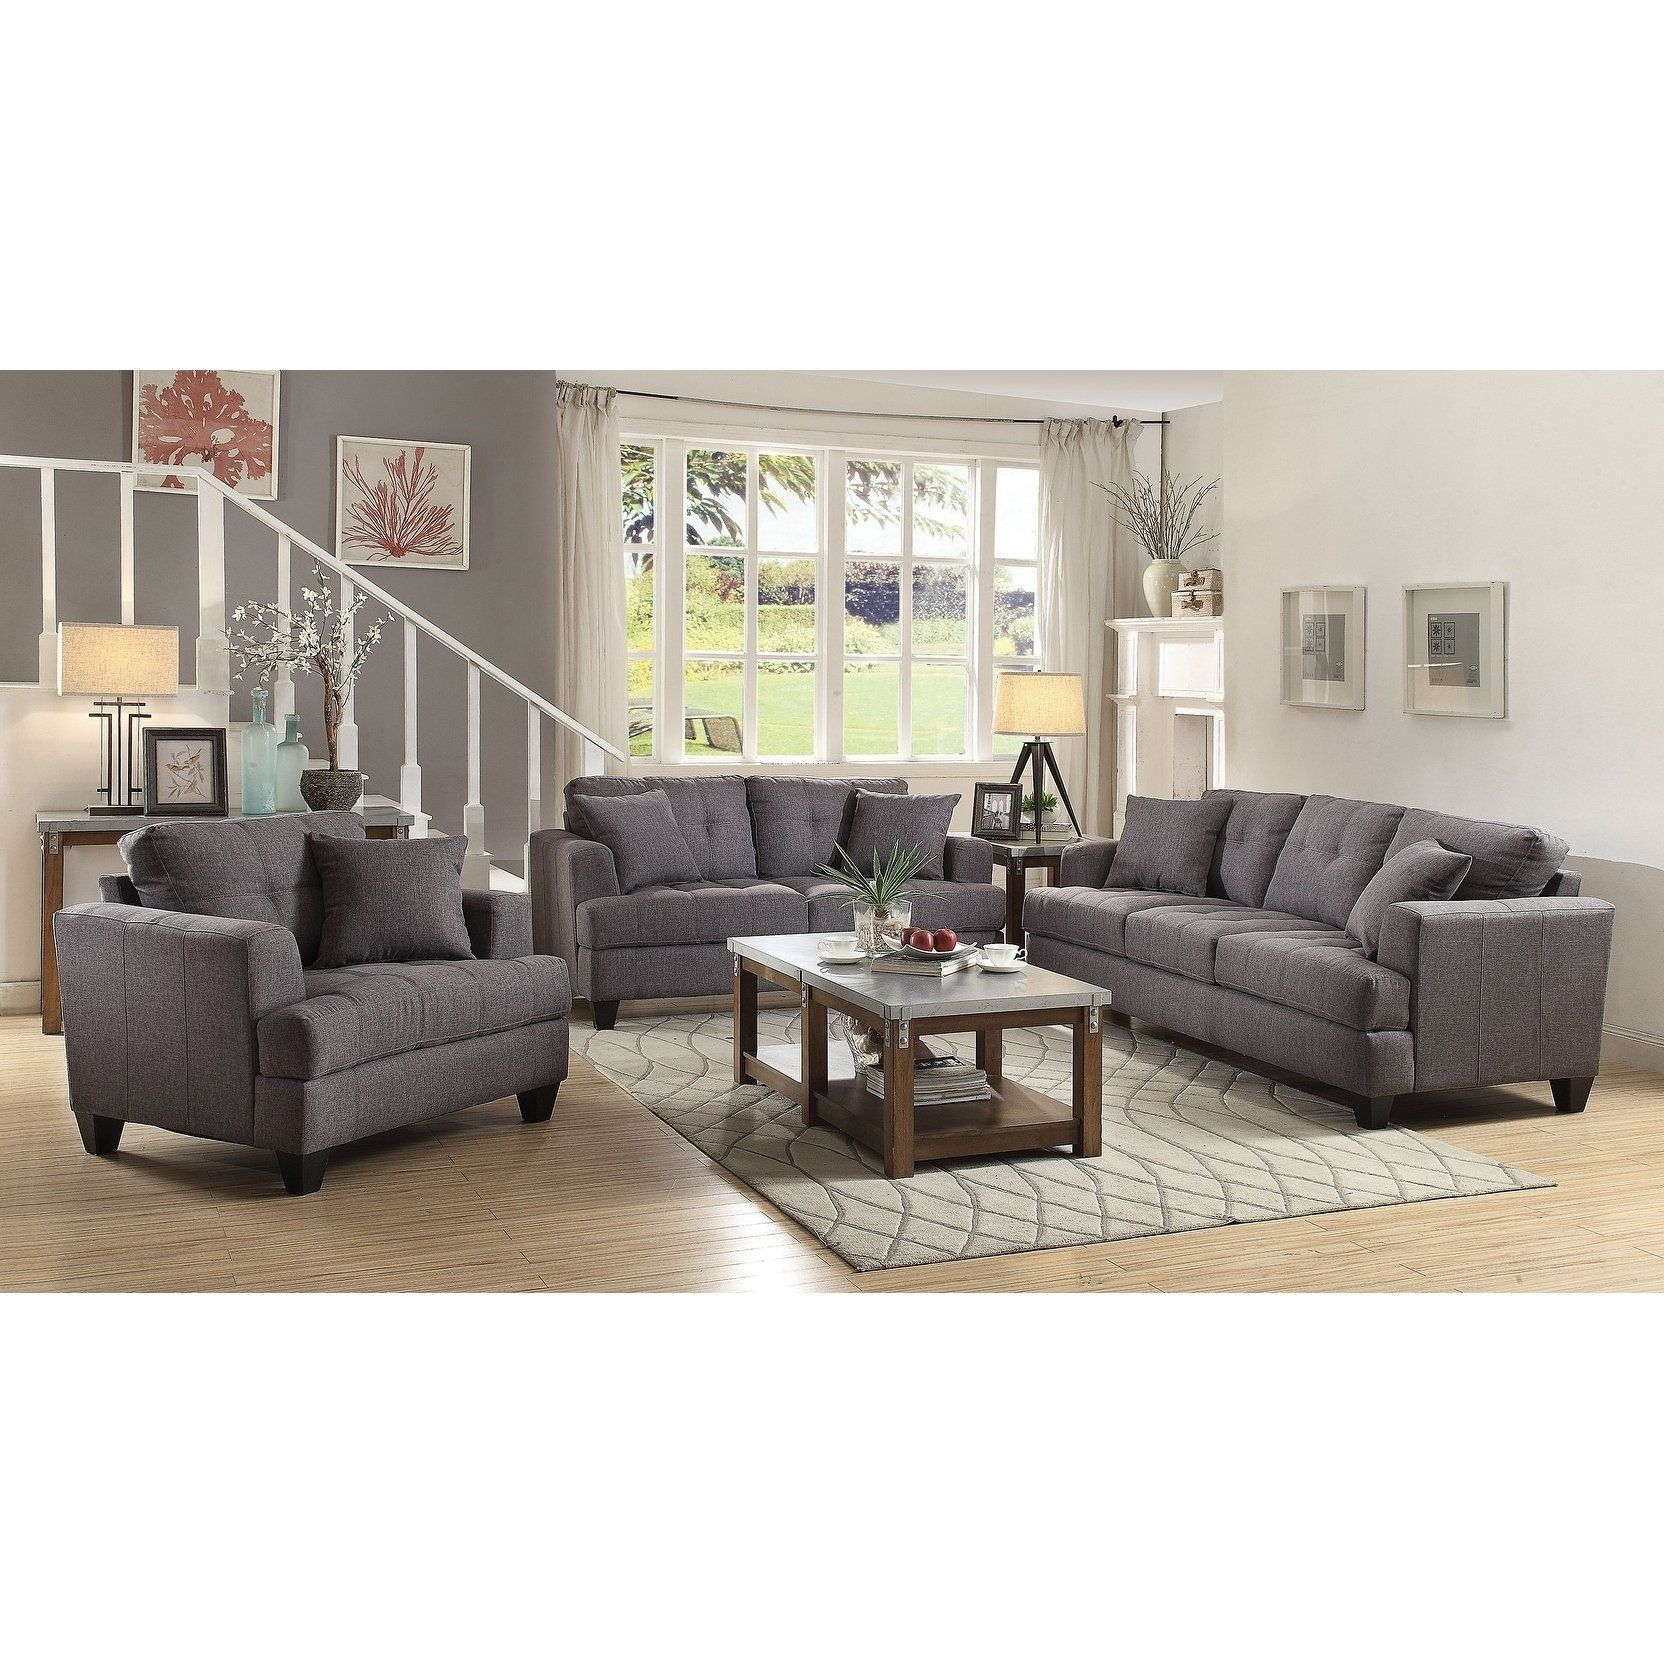 Best Ashton Charcoal 3 Piece Living Room Set Brown In 2020 400 x 300